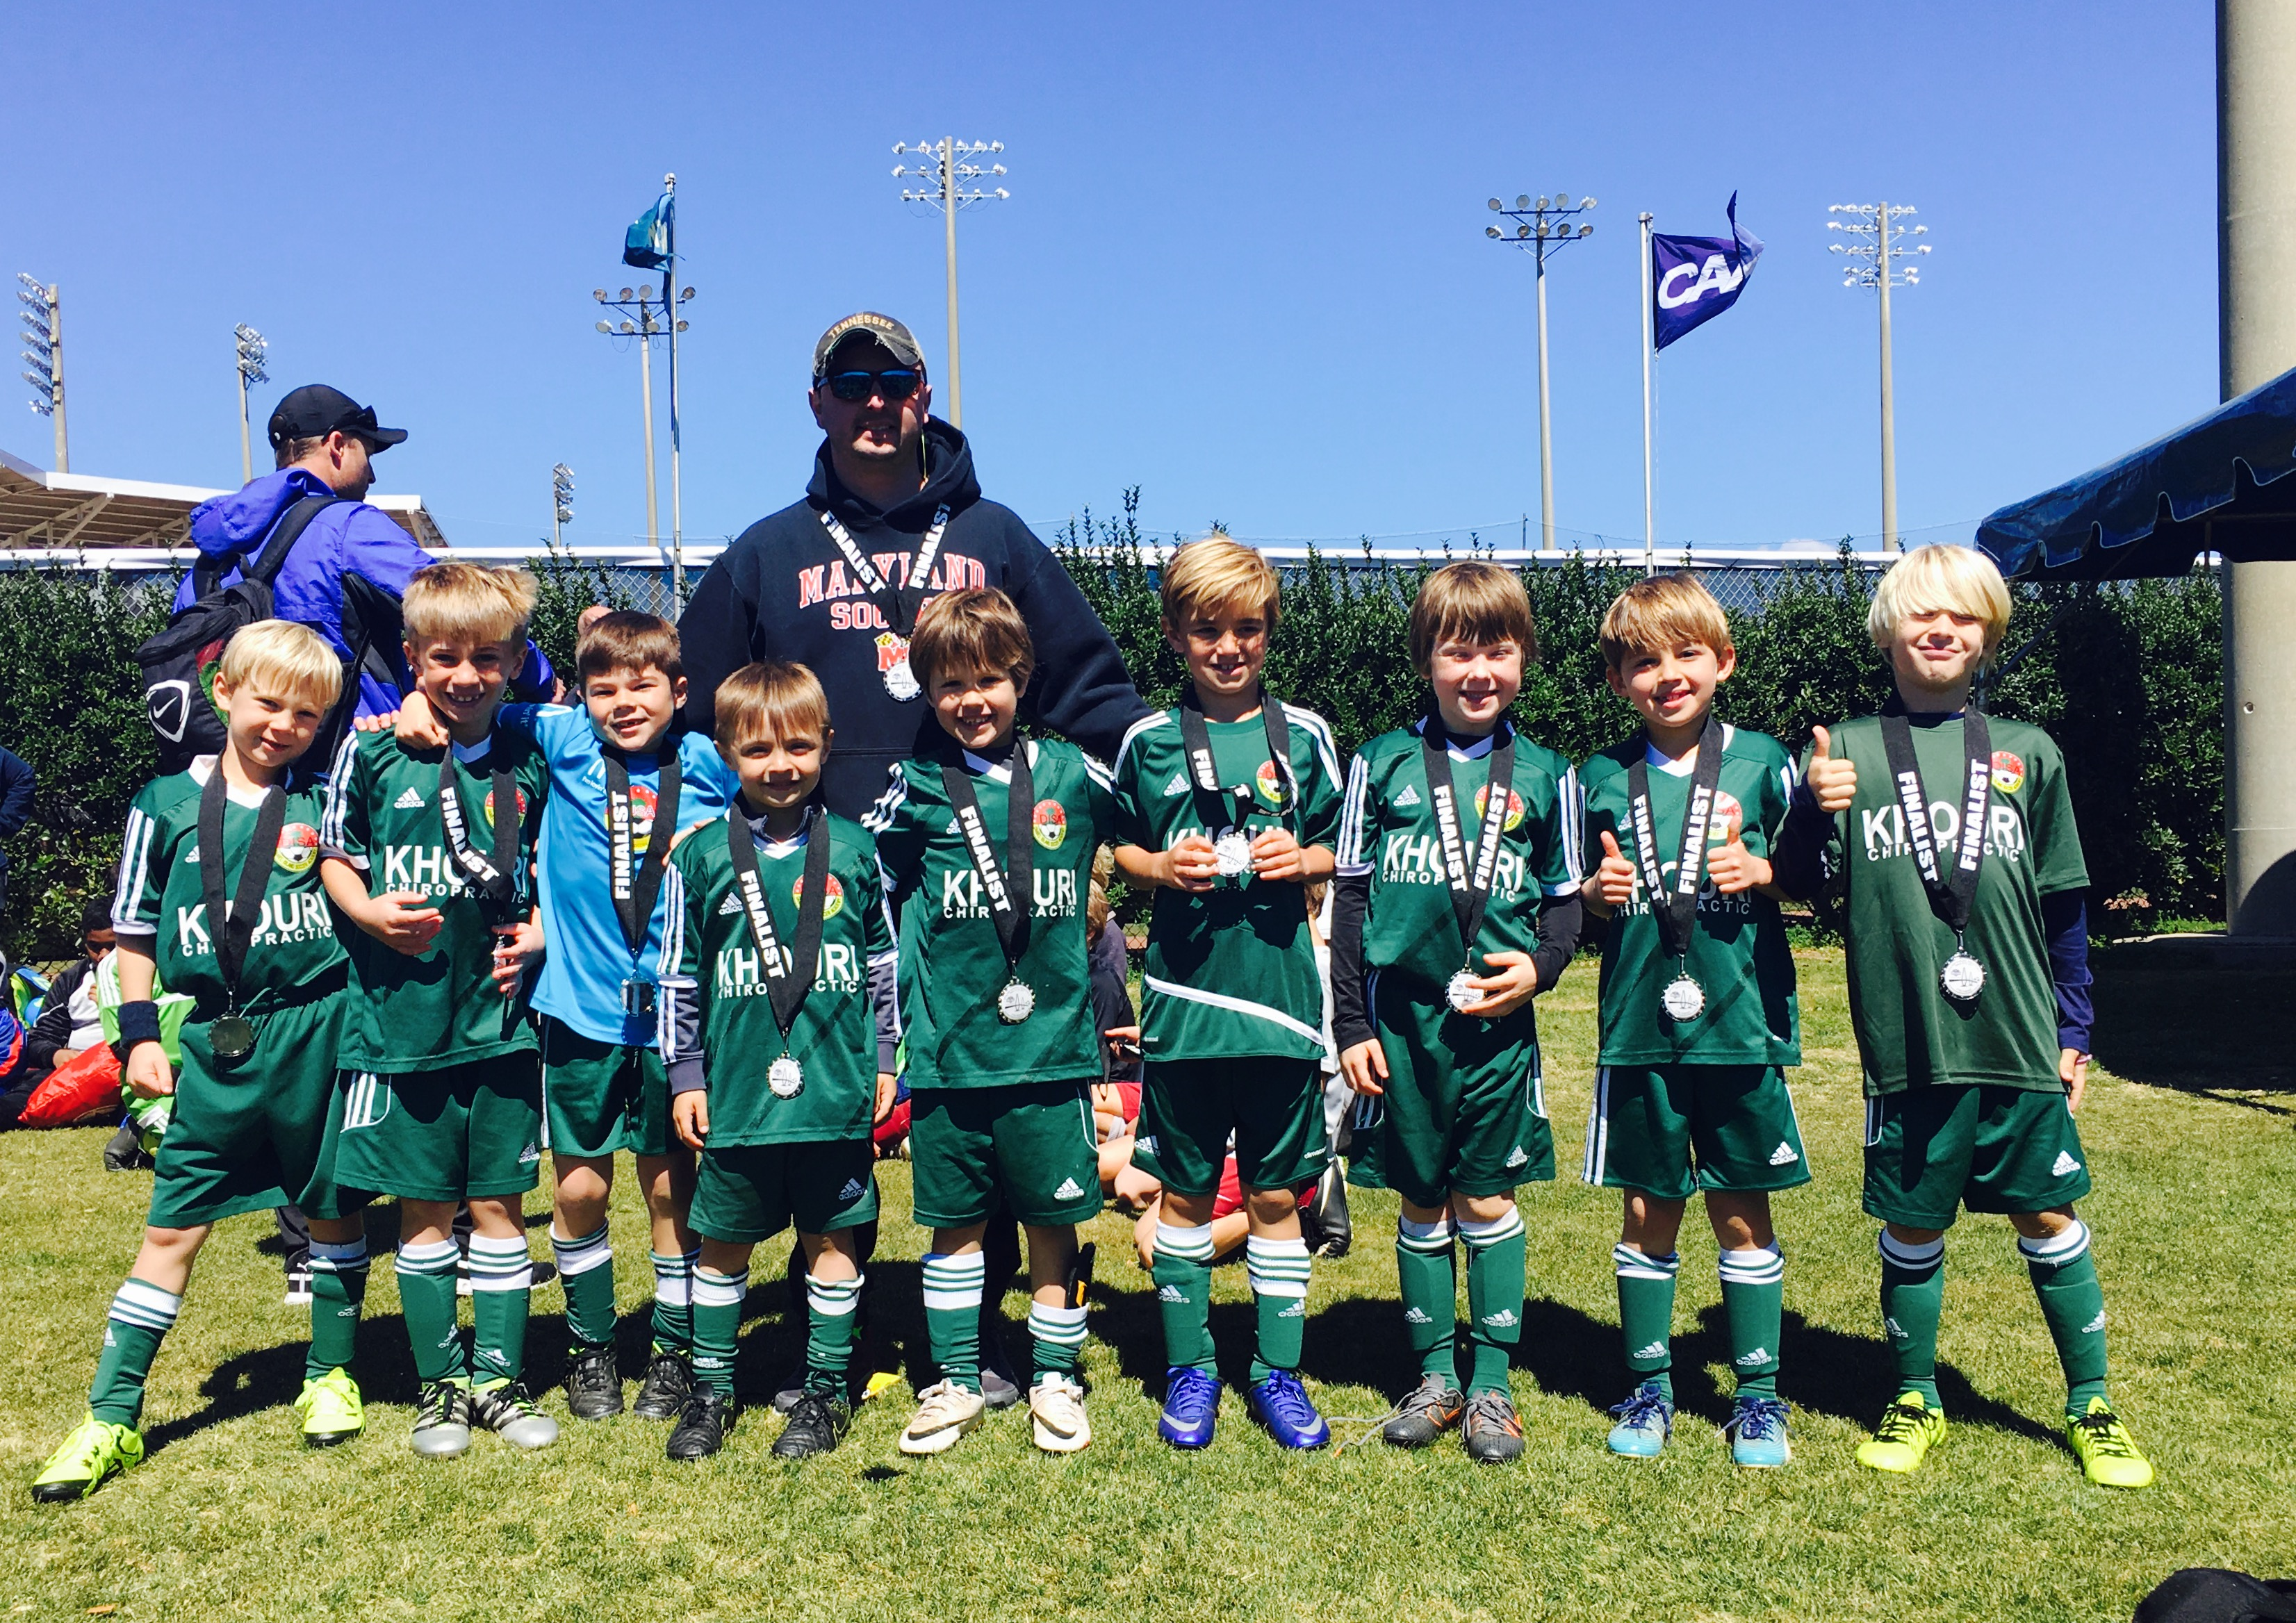 U8 Timbers (DISA) Left to right: Connor Leddy, Lucas Rizzetto, Grady Beard, Zak Turner, Miles Orvin, Grayson Barna, Ben Hoover, Louis Rainero, Ralston Potts and Coach Luis.